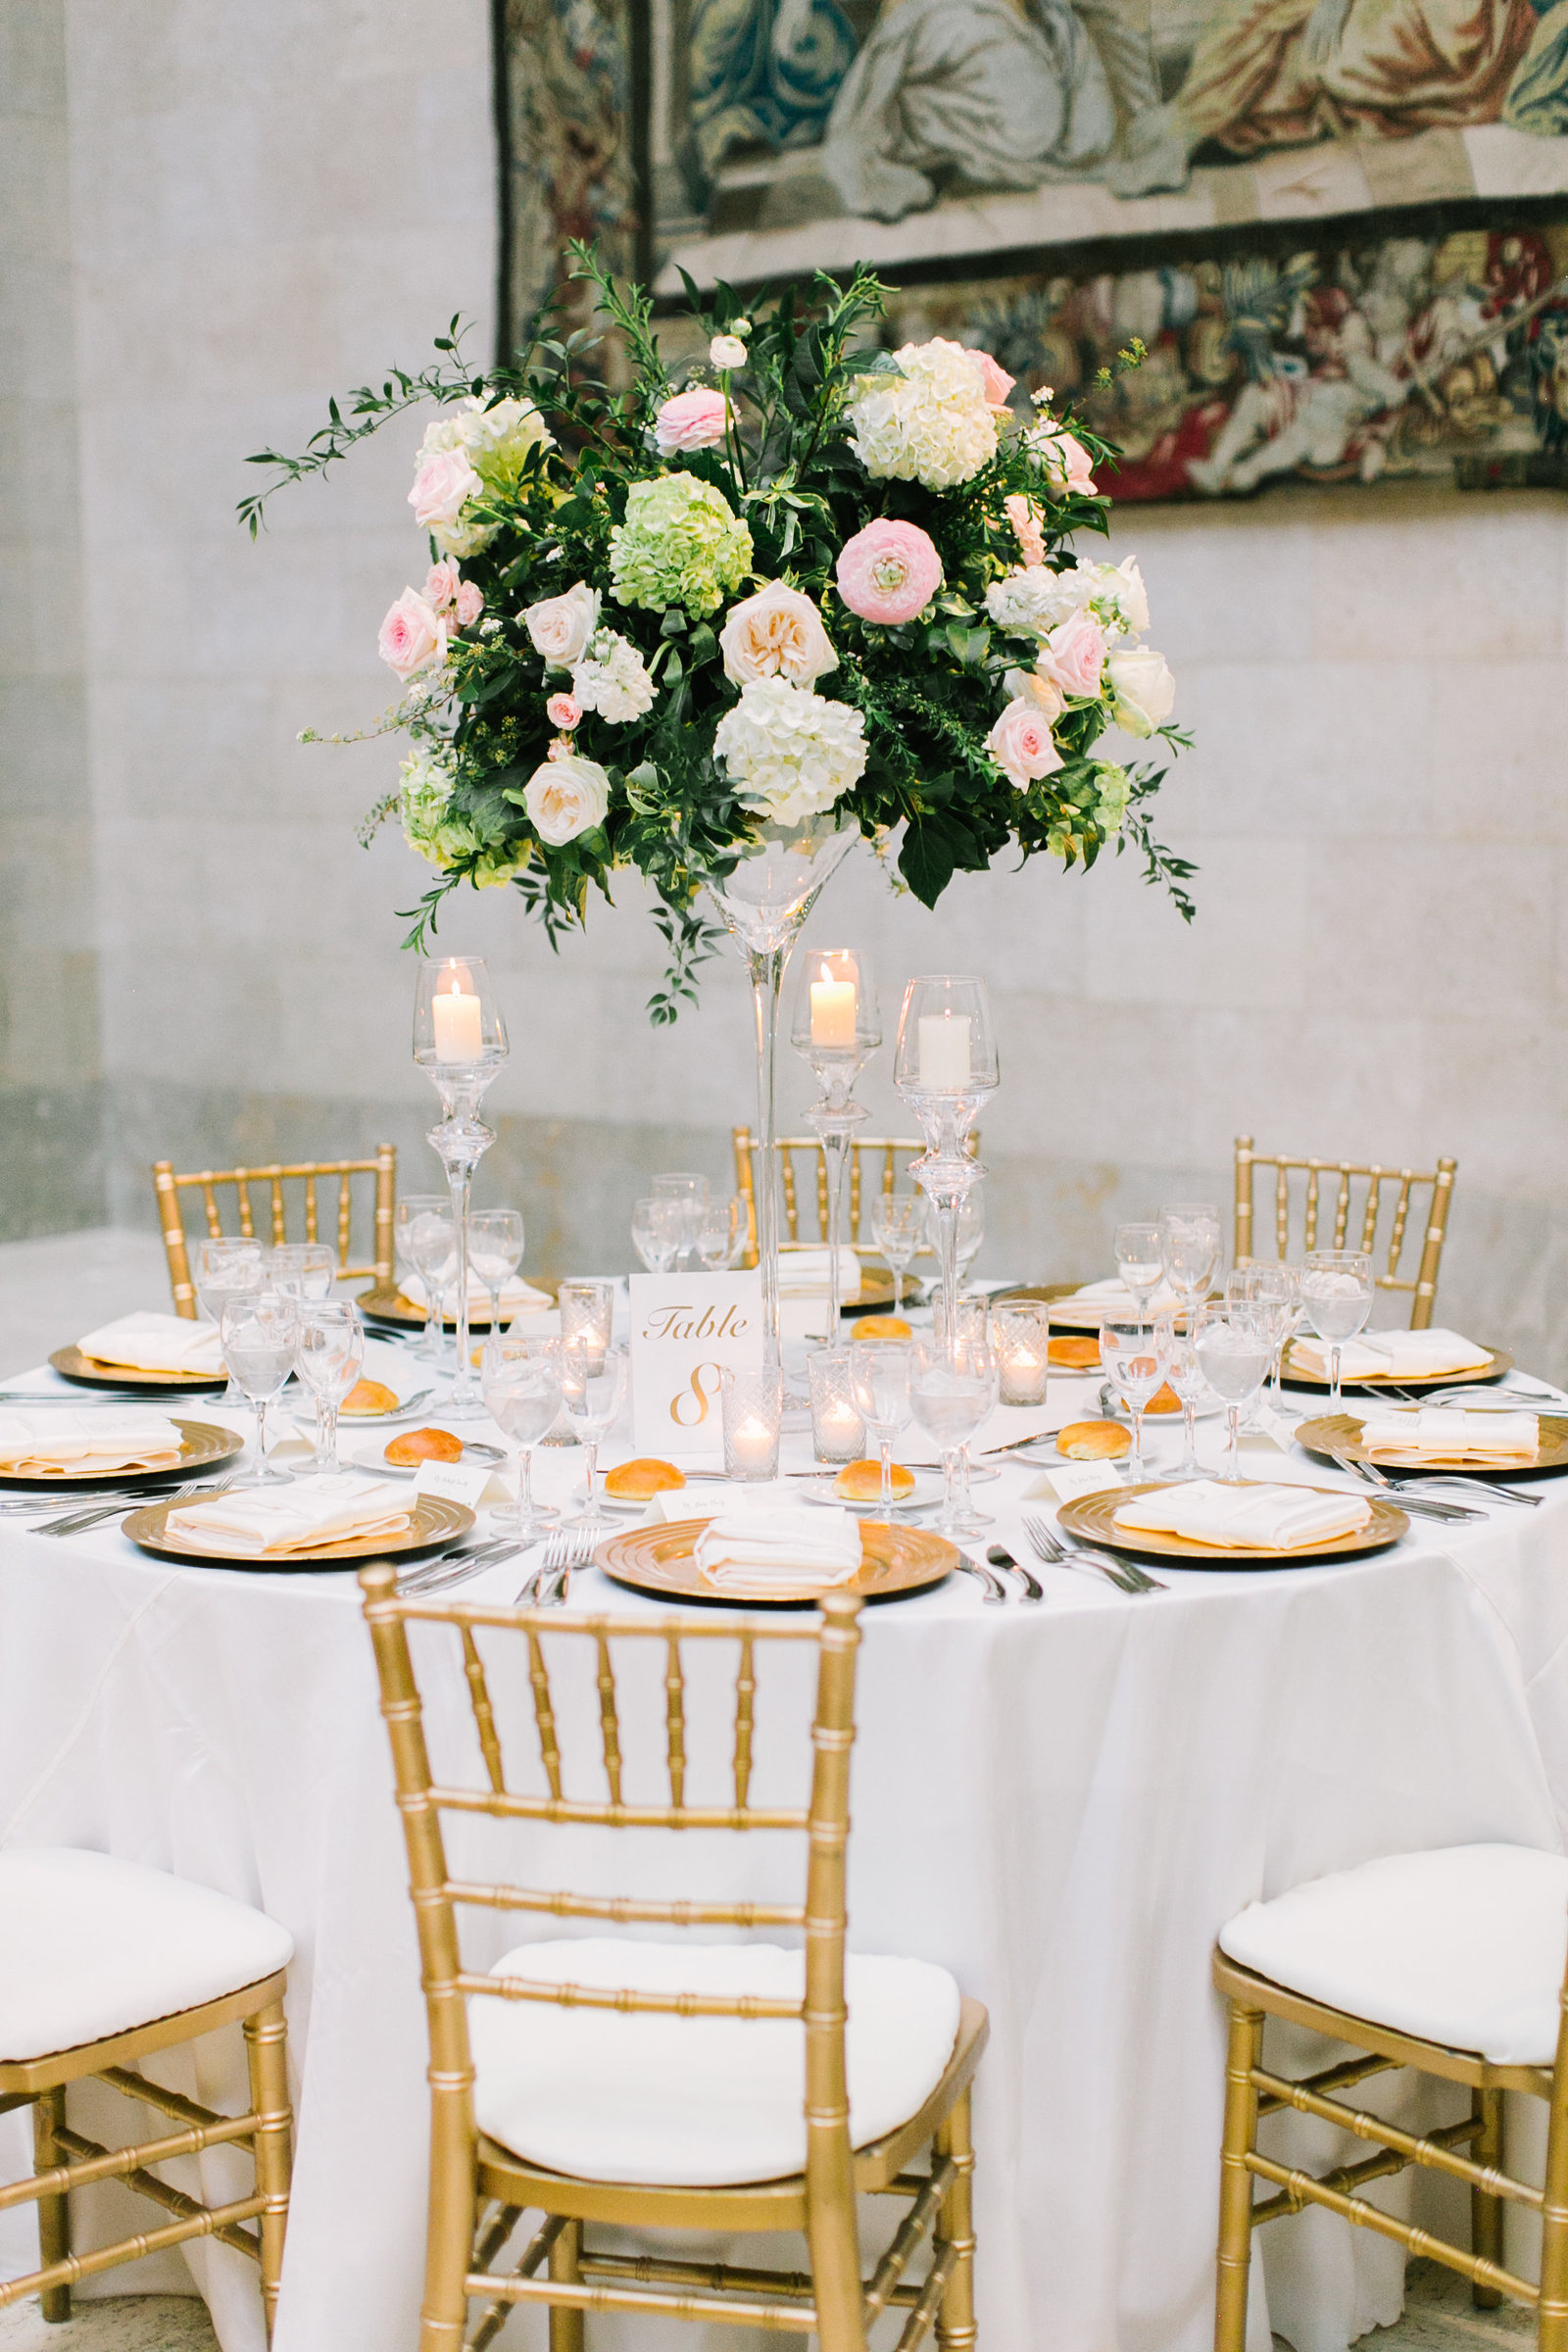 Nelson-Atkins-Kansas-City-Luxury-Garden-Wedding-Planning-Madison-Sanders-363